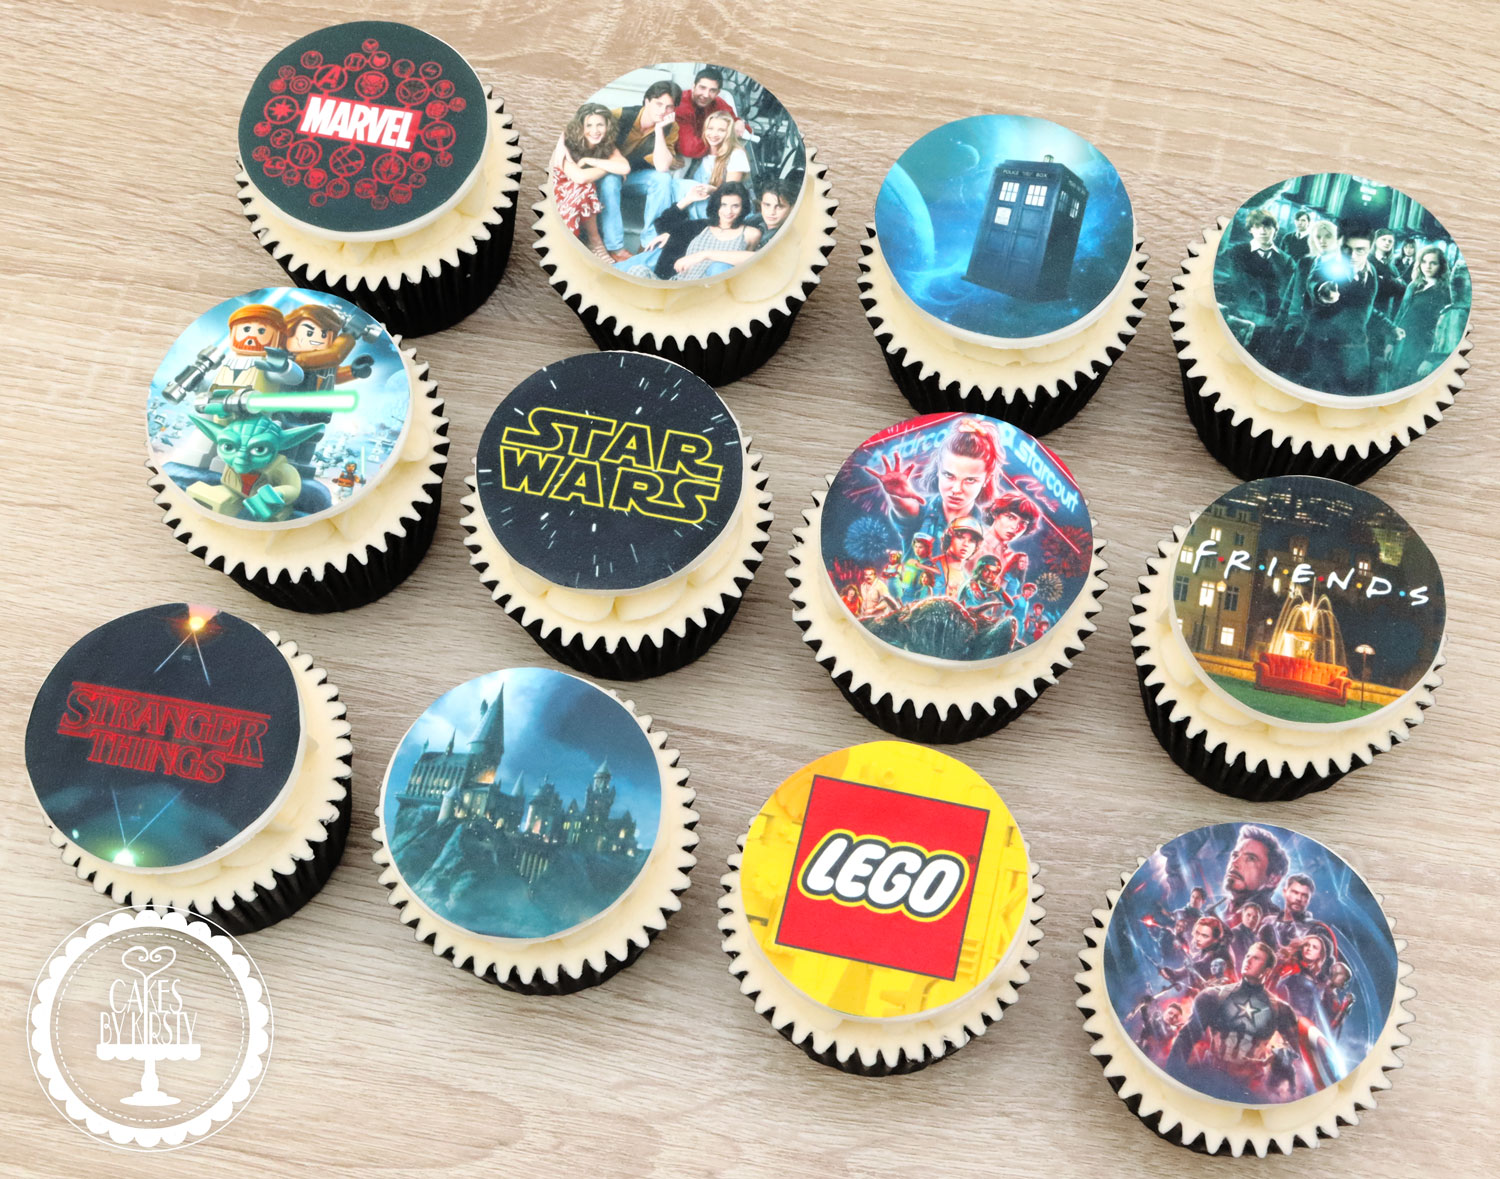 20200111 - Favourite Movie Cupcakes